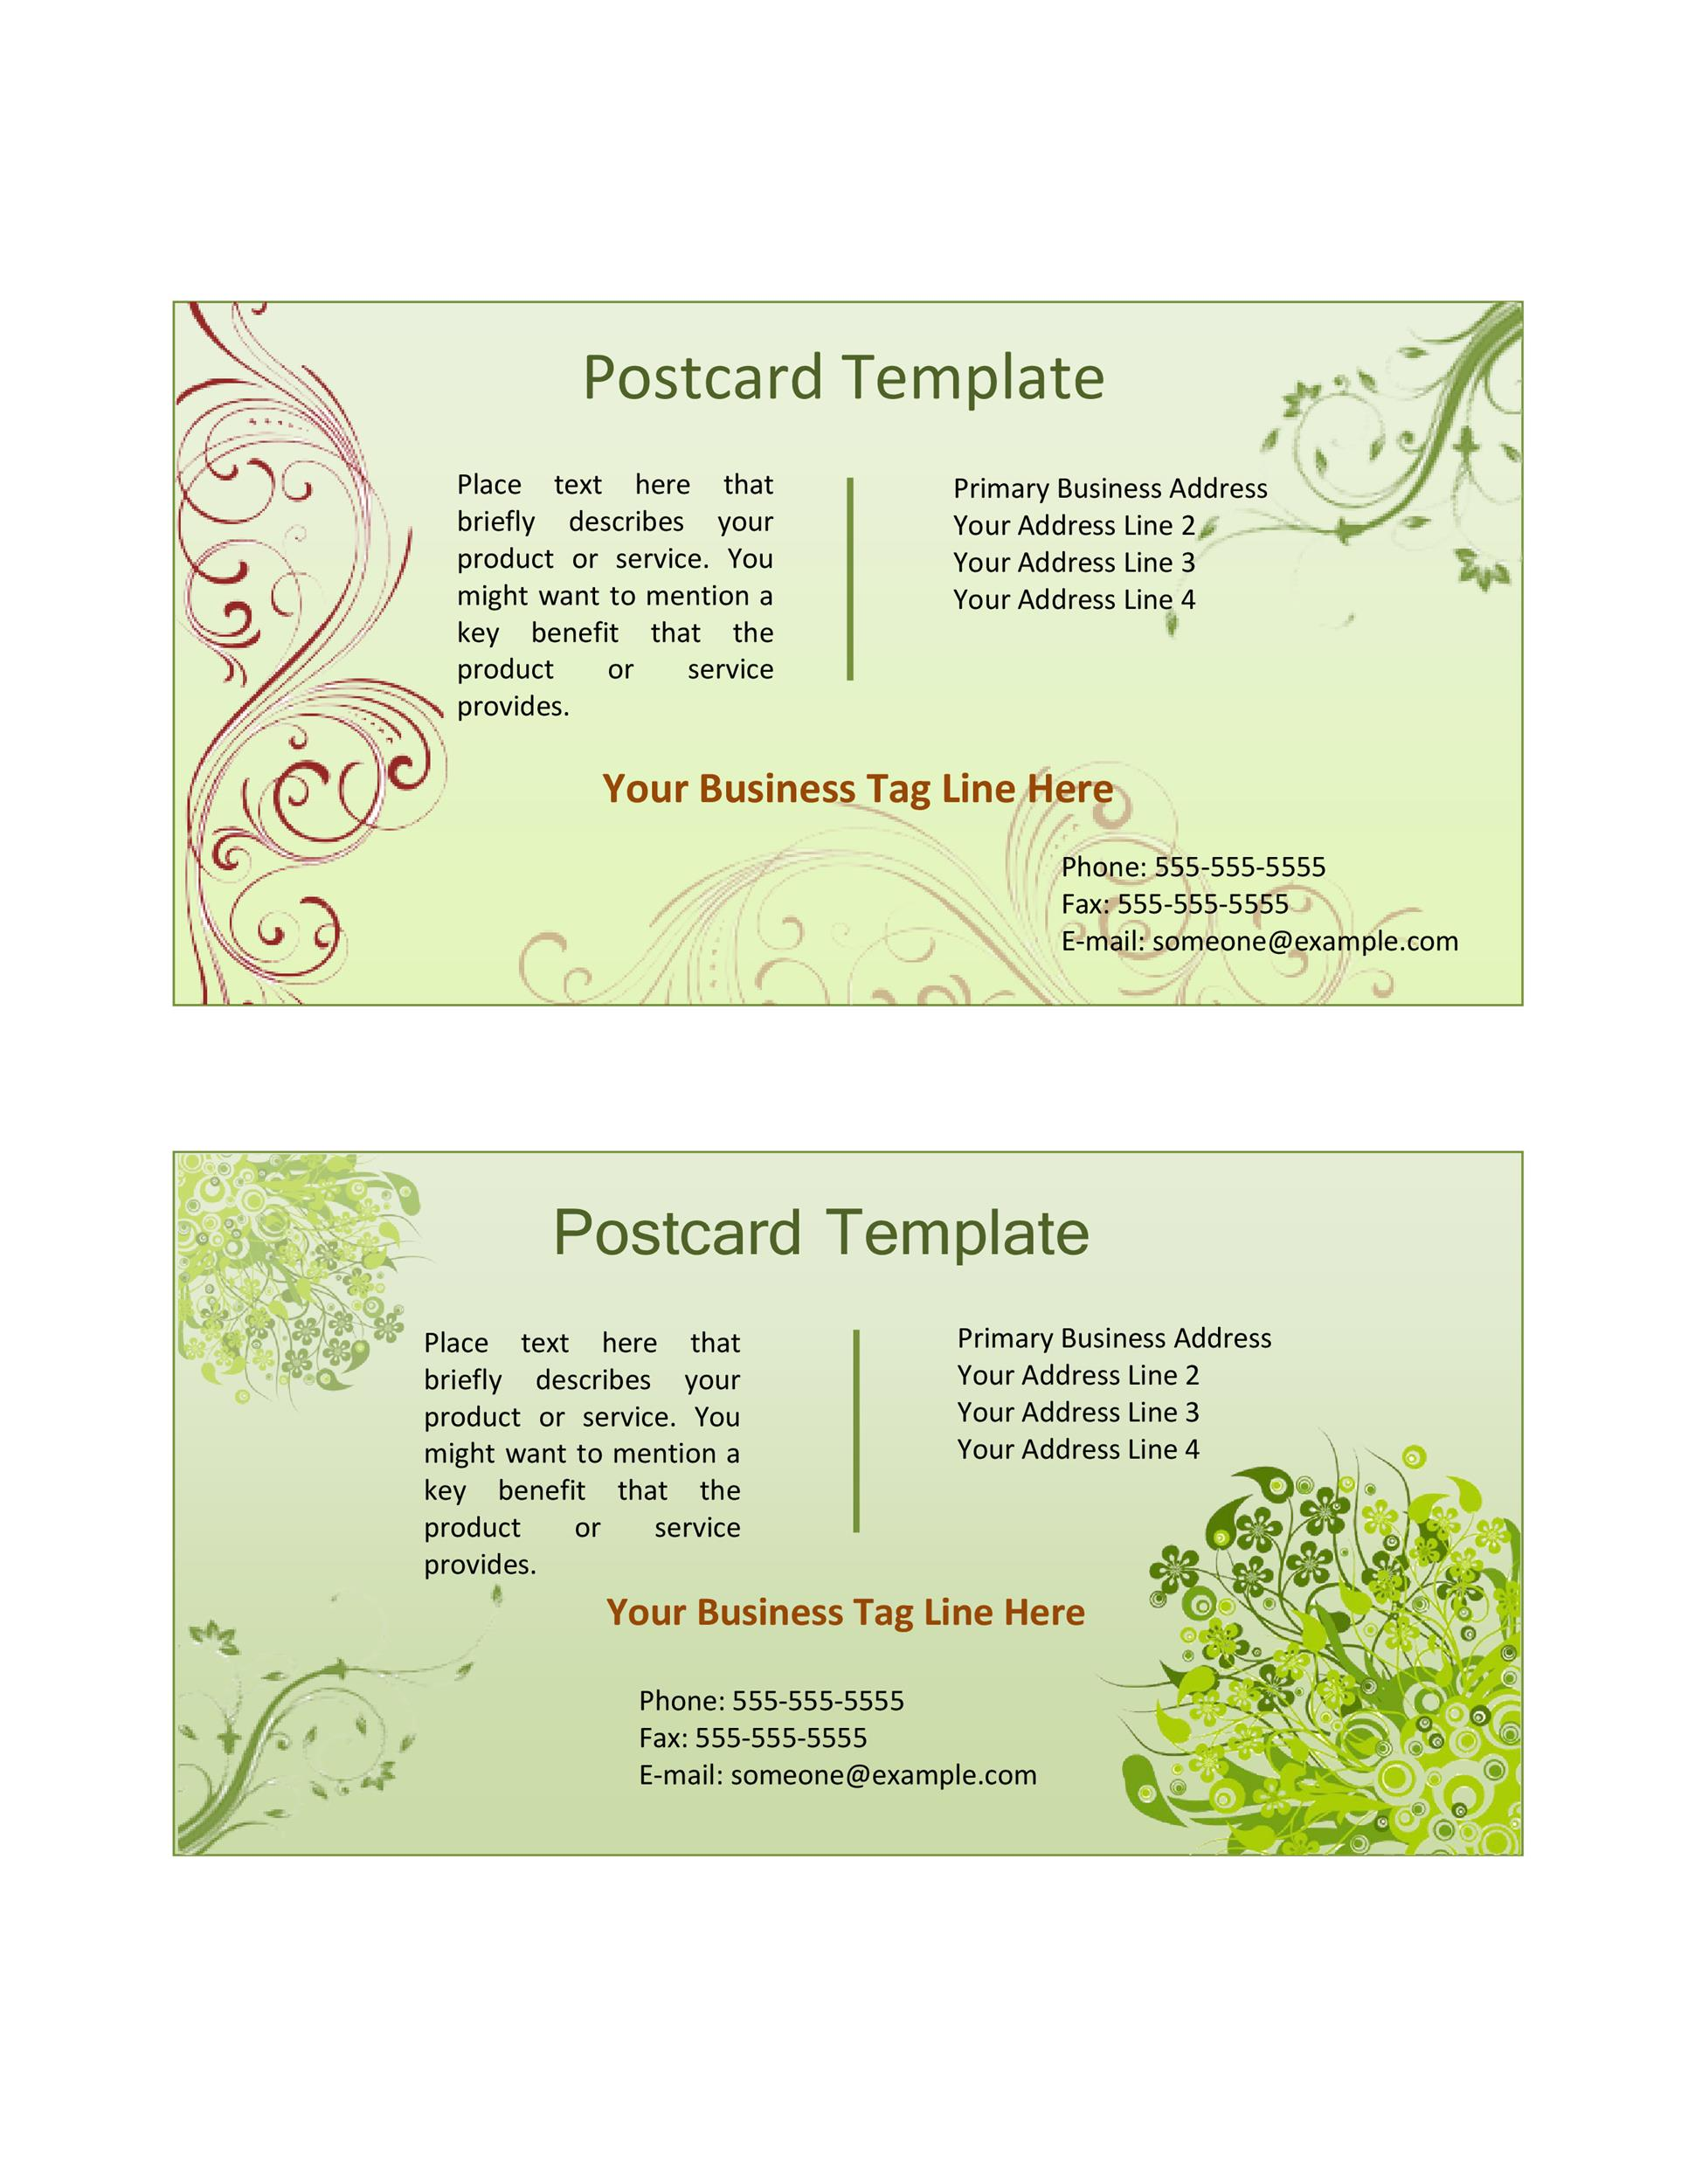 Free postcard template 39